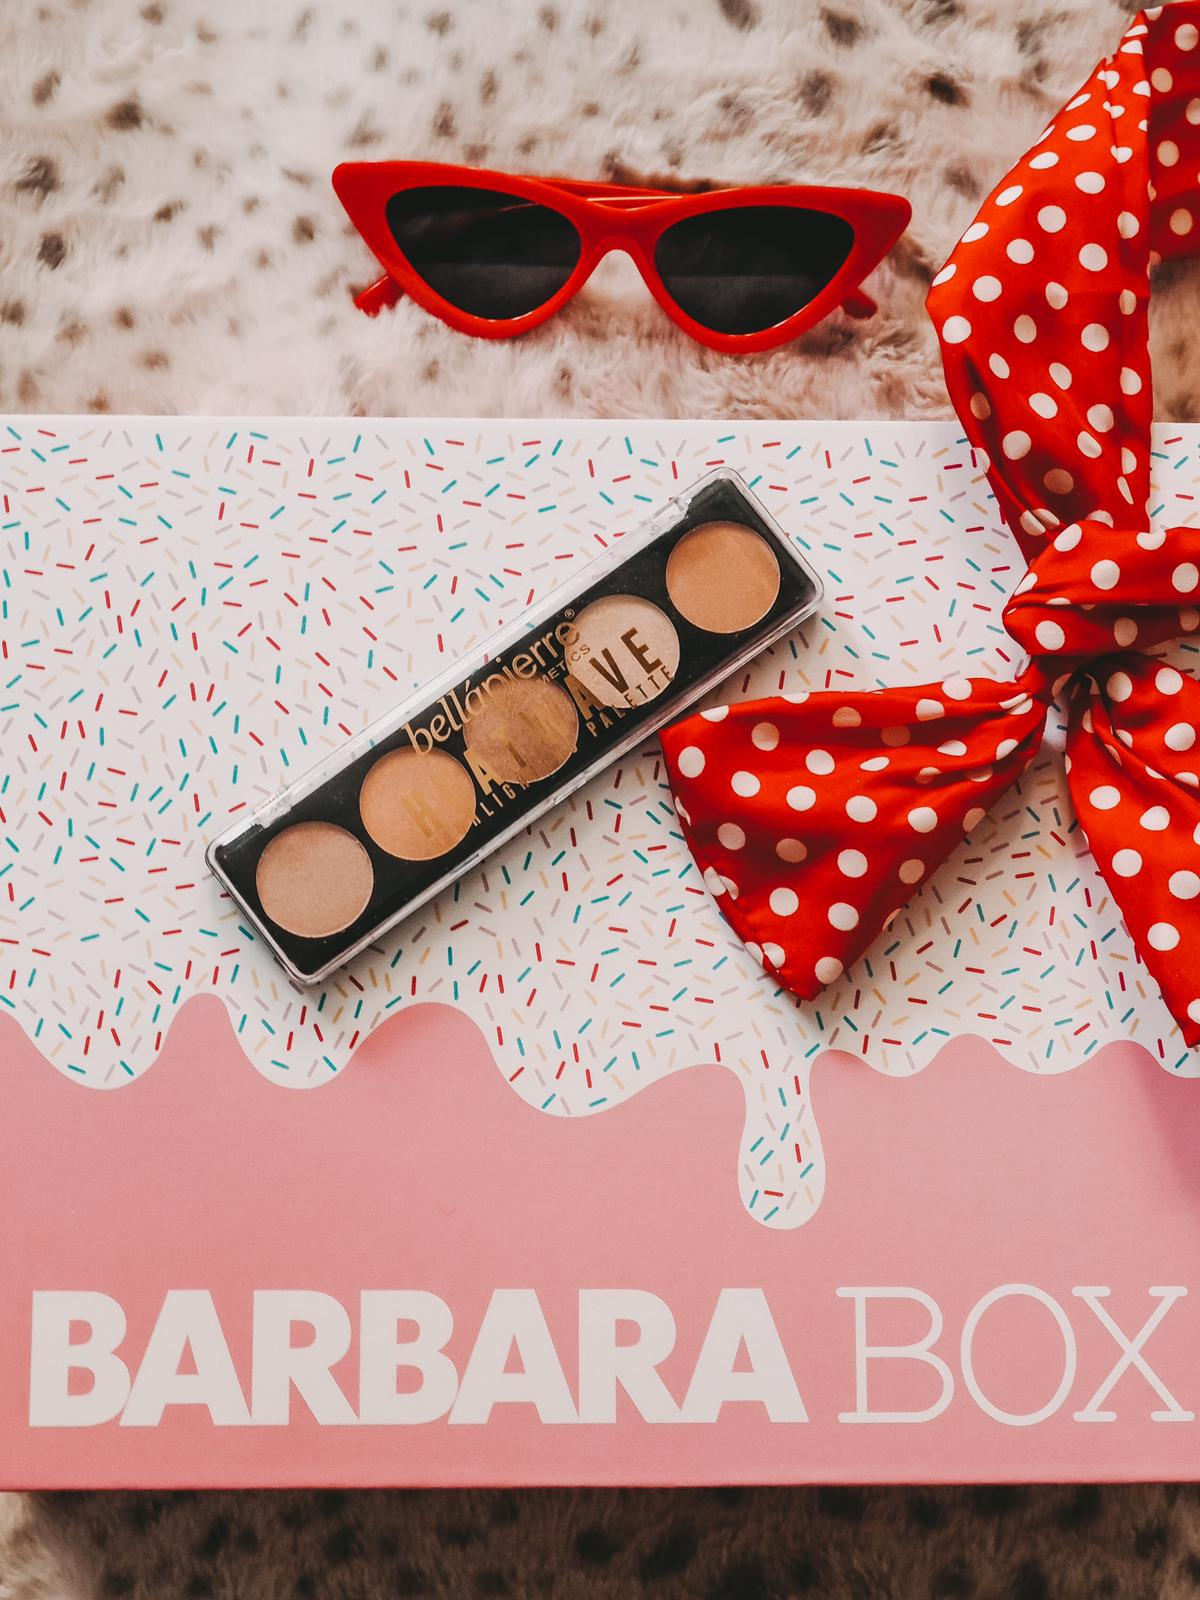 Bellapierre Highlighter Palette in der Barbara Box Sahneschnitte